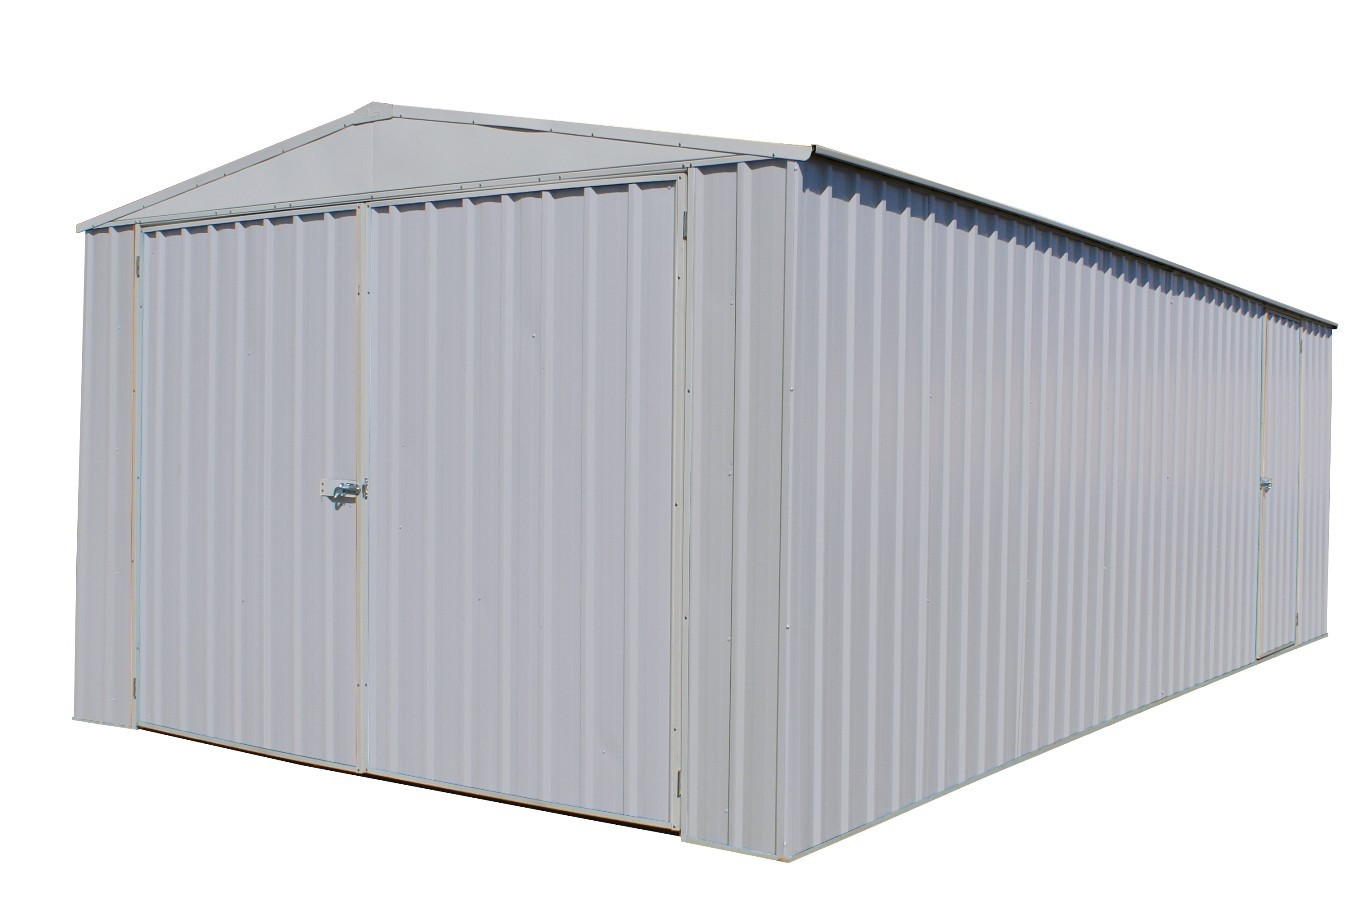 Absco Highlander Garden Shed Zinc